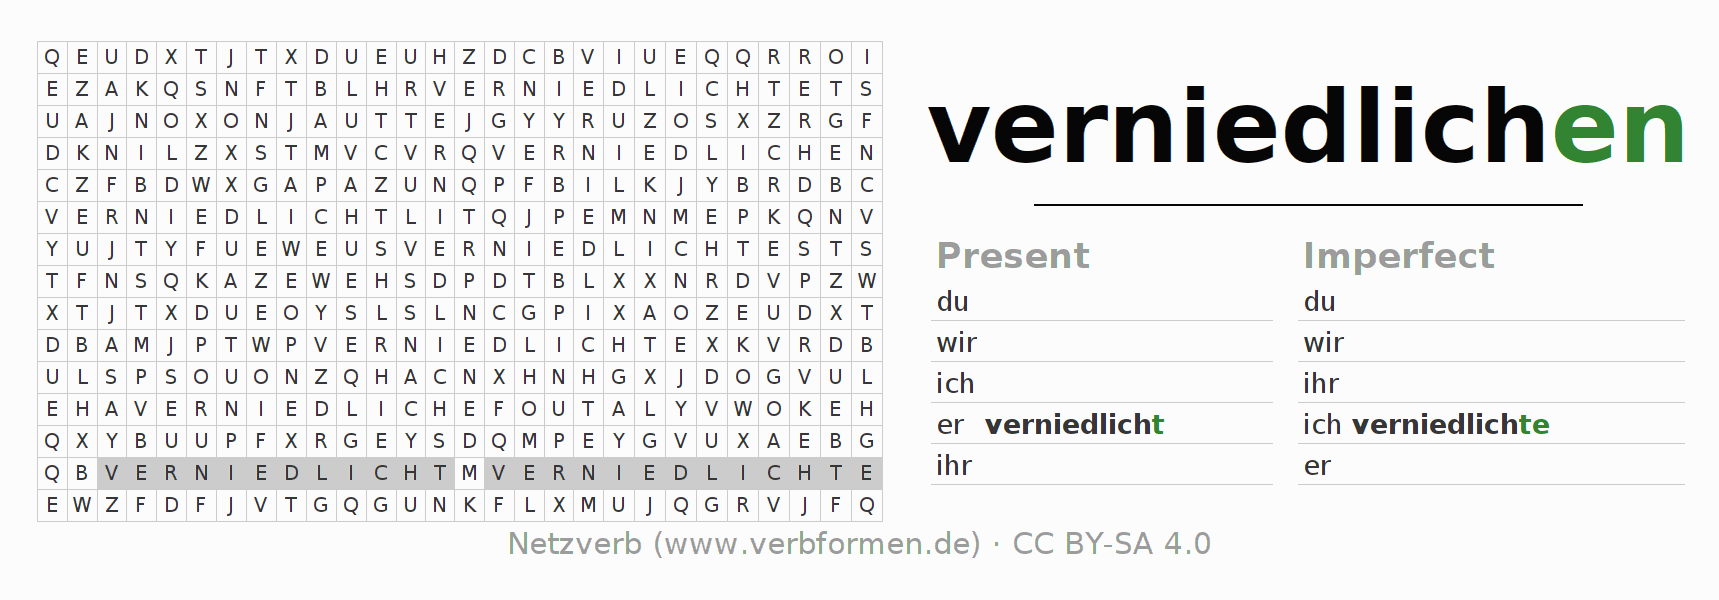 Word search puzzle for the conjugation of the verb verniedlichen